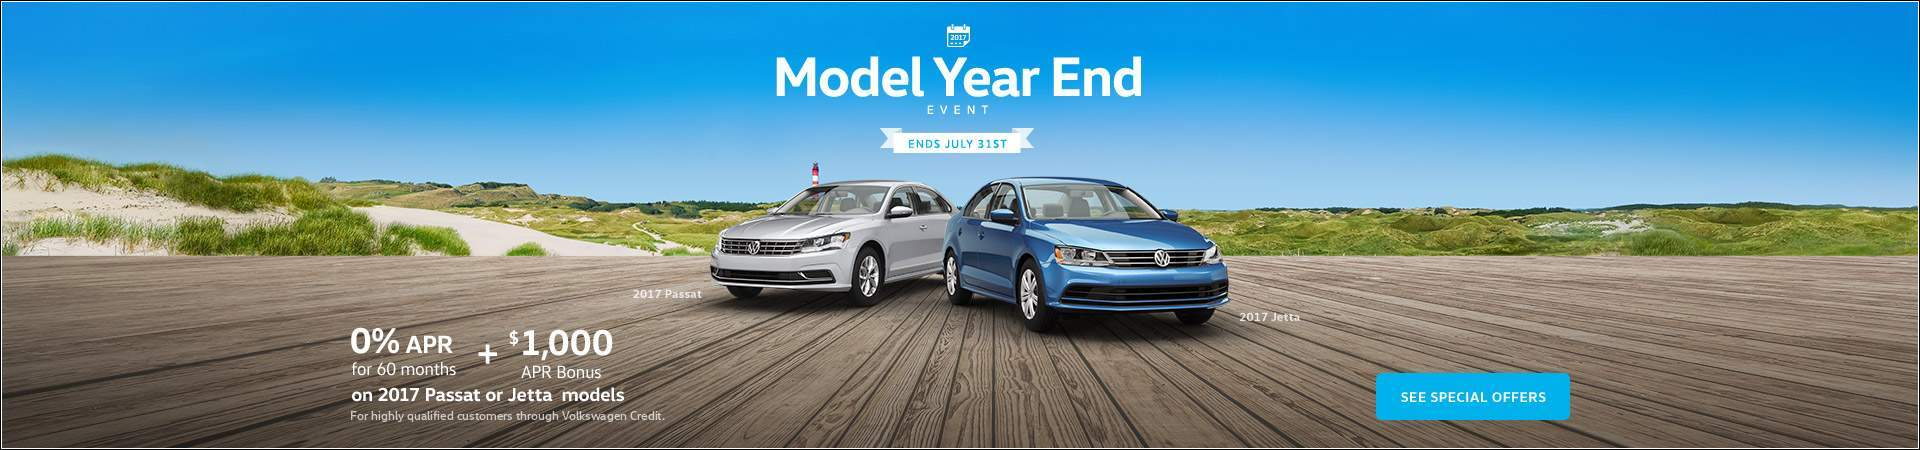 Model Year end